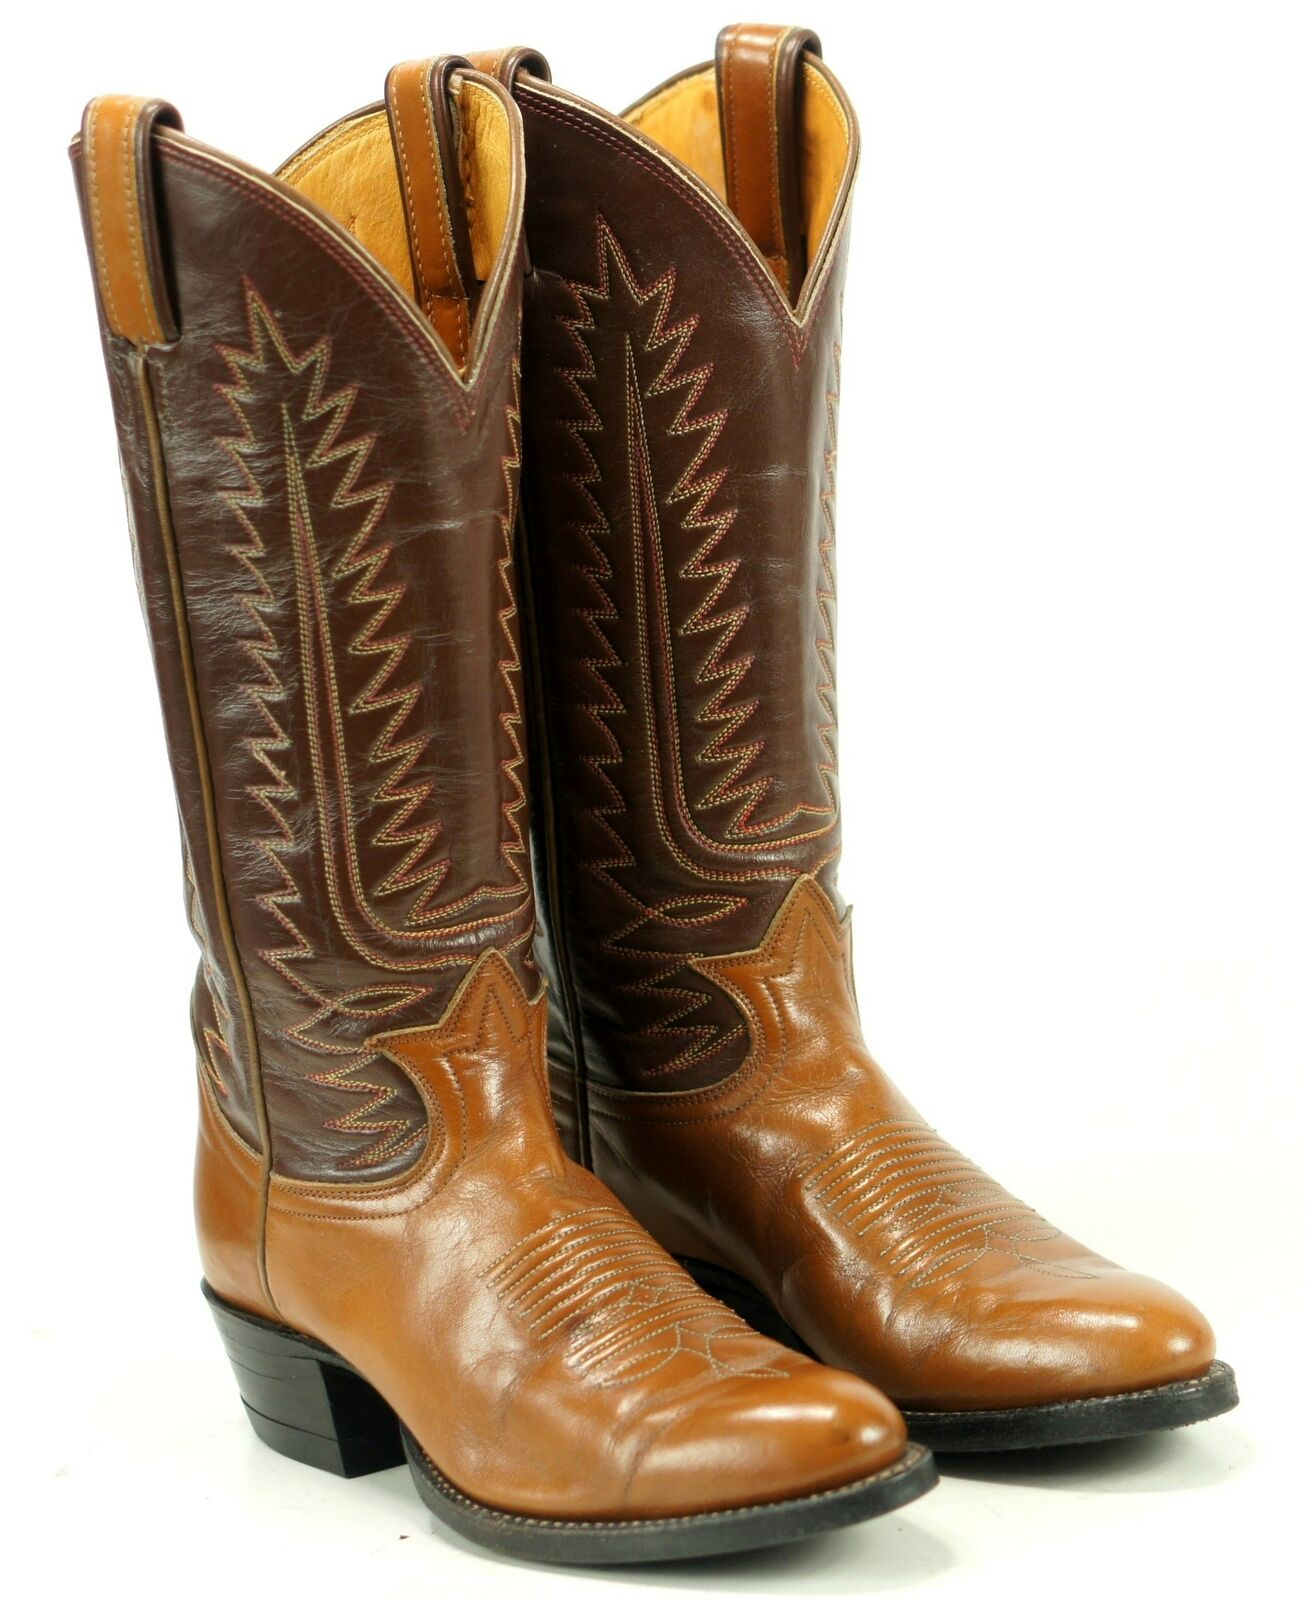 Tony Lama Women's Brown Leather Western Cowboy Boots Boho Vintage US Made 4.5 B